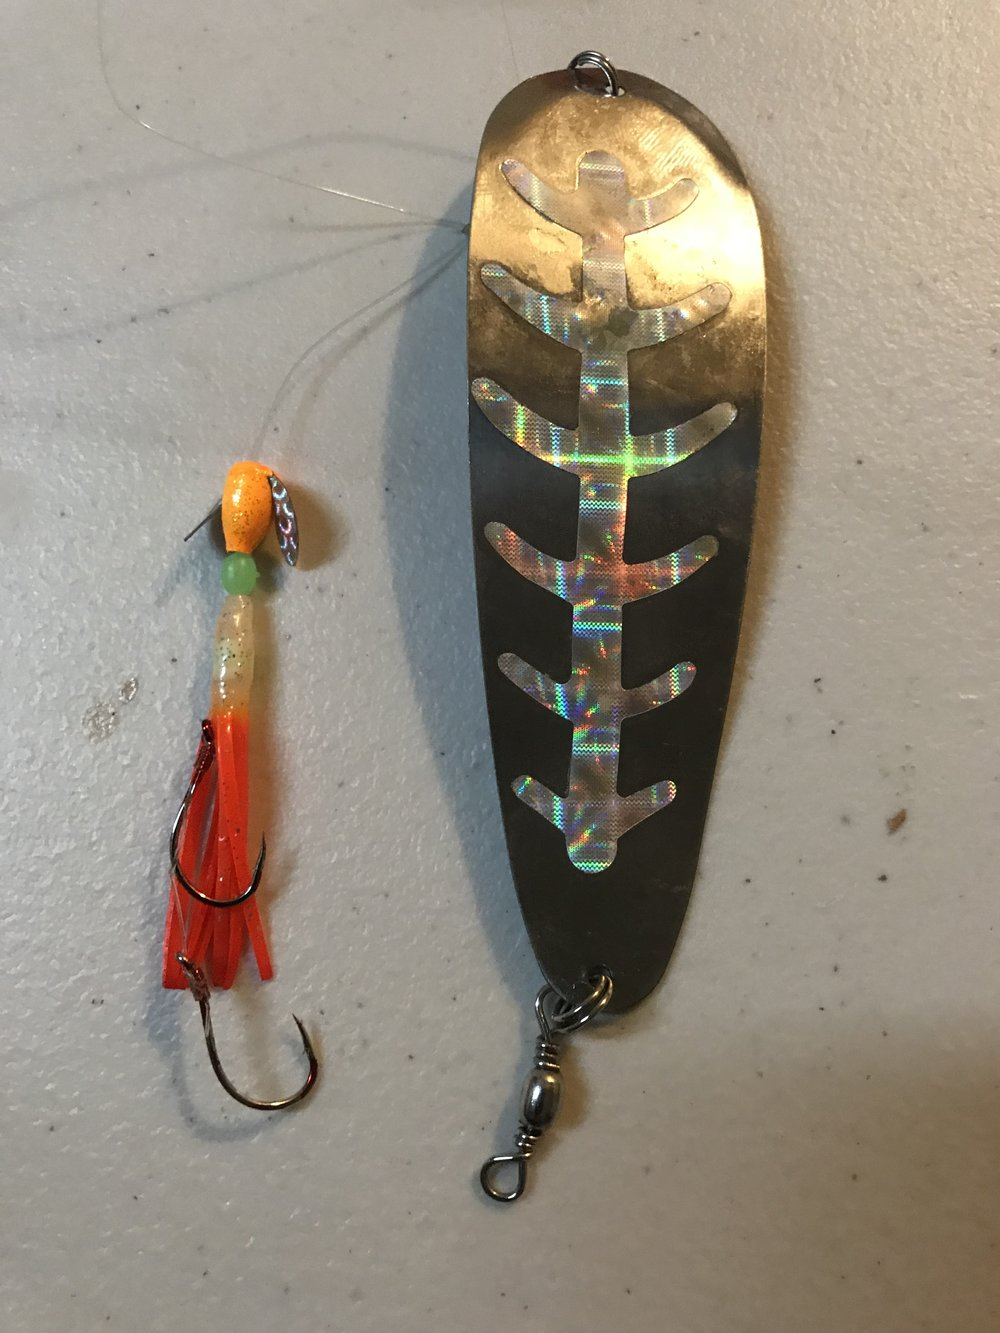 "This rig has been deadly lately.  Try a Mack's Lure Smile Blade in front of the small hoochie as well as I really like them.  Try different color Mack's Lure 4"" dodgers, especially in the UV colors for great results."